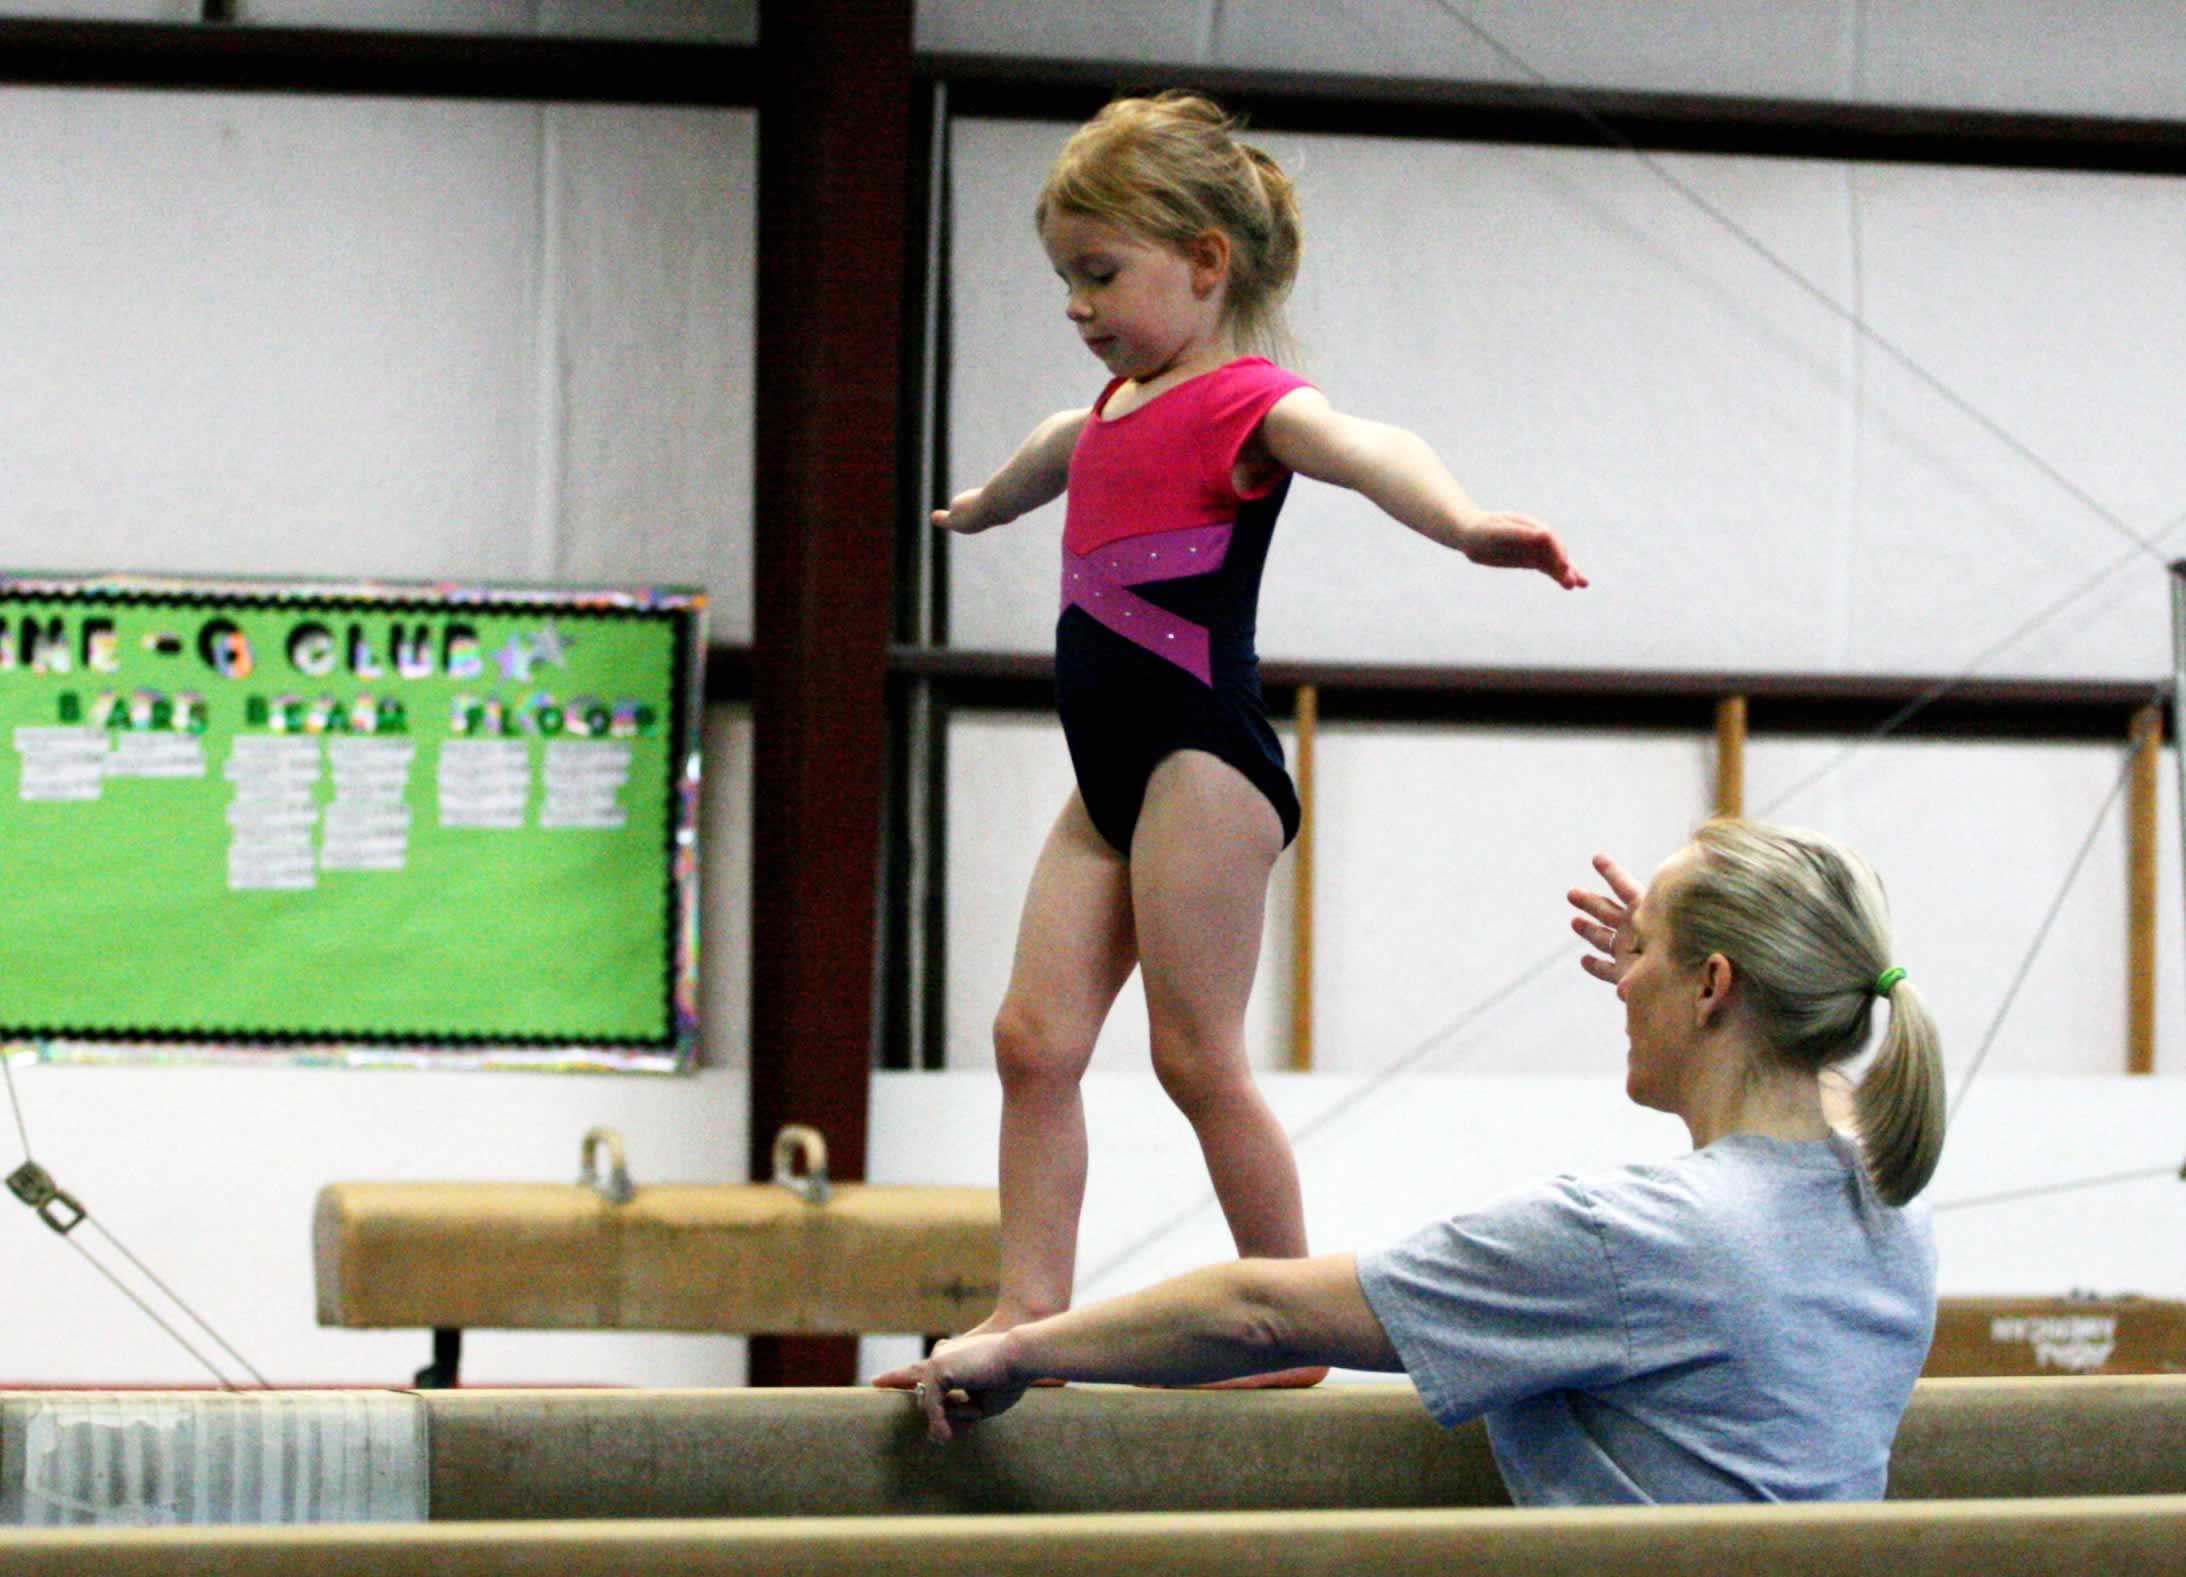 images of Preschool Gymnasts Photo Picture Image And Wallpaper